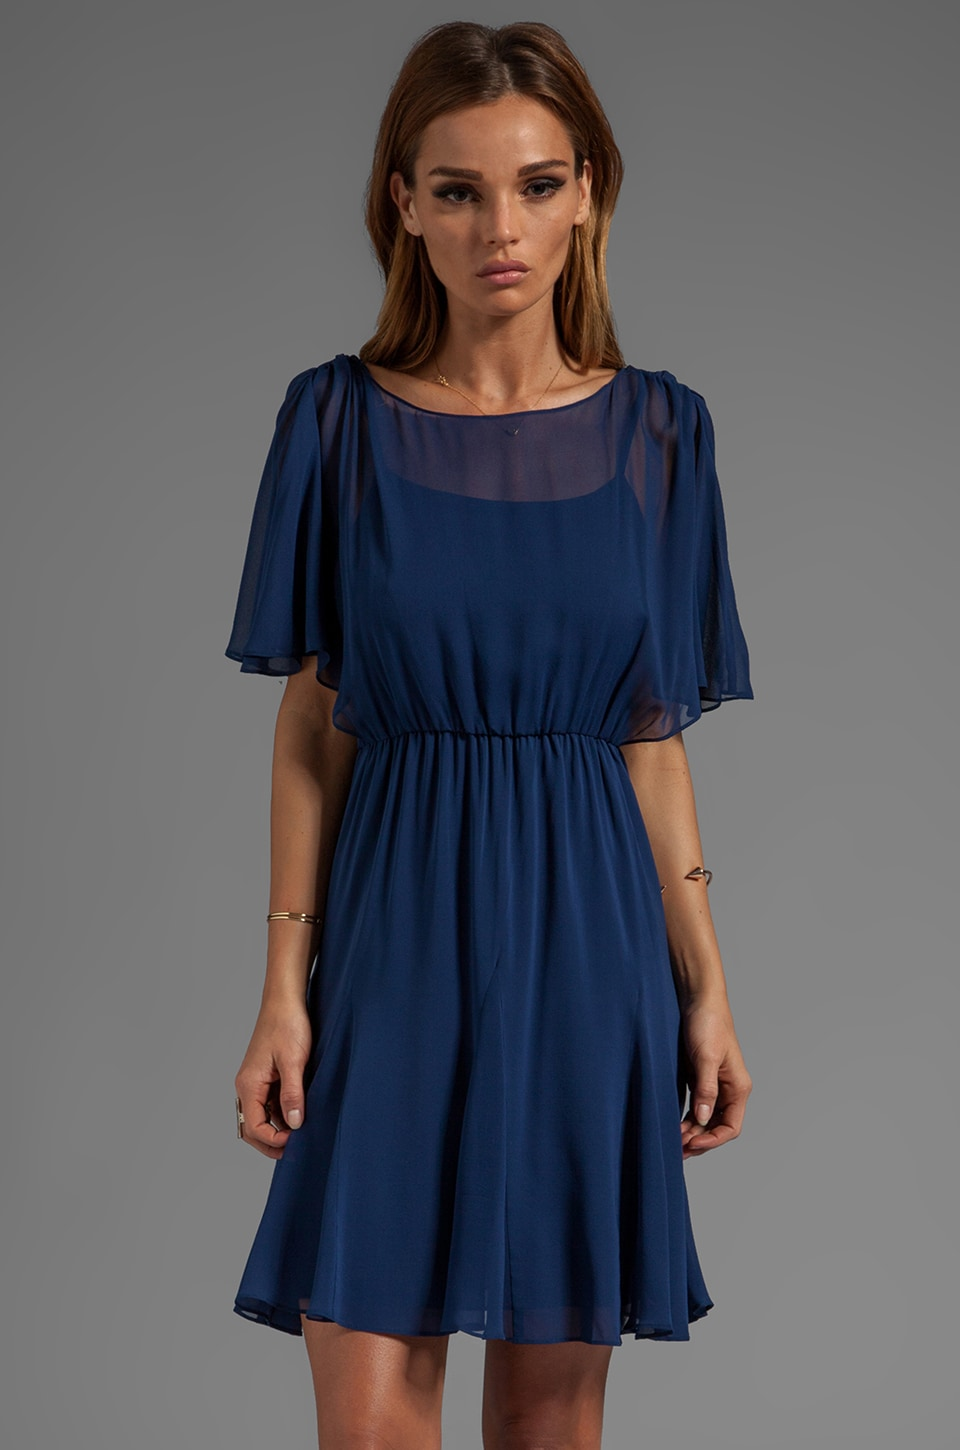 Alice + Olivia Phaedra Pleated Godet Flutter Top Dress in Indigo